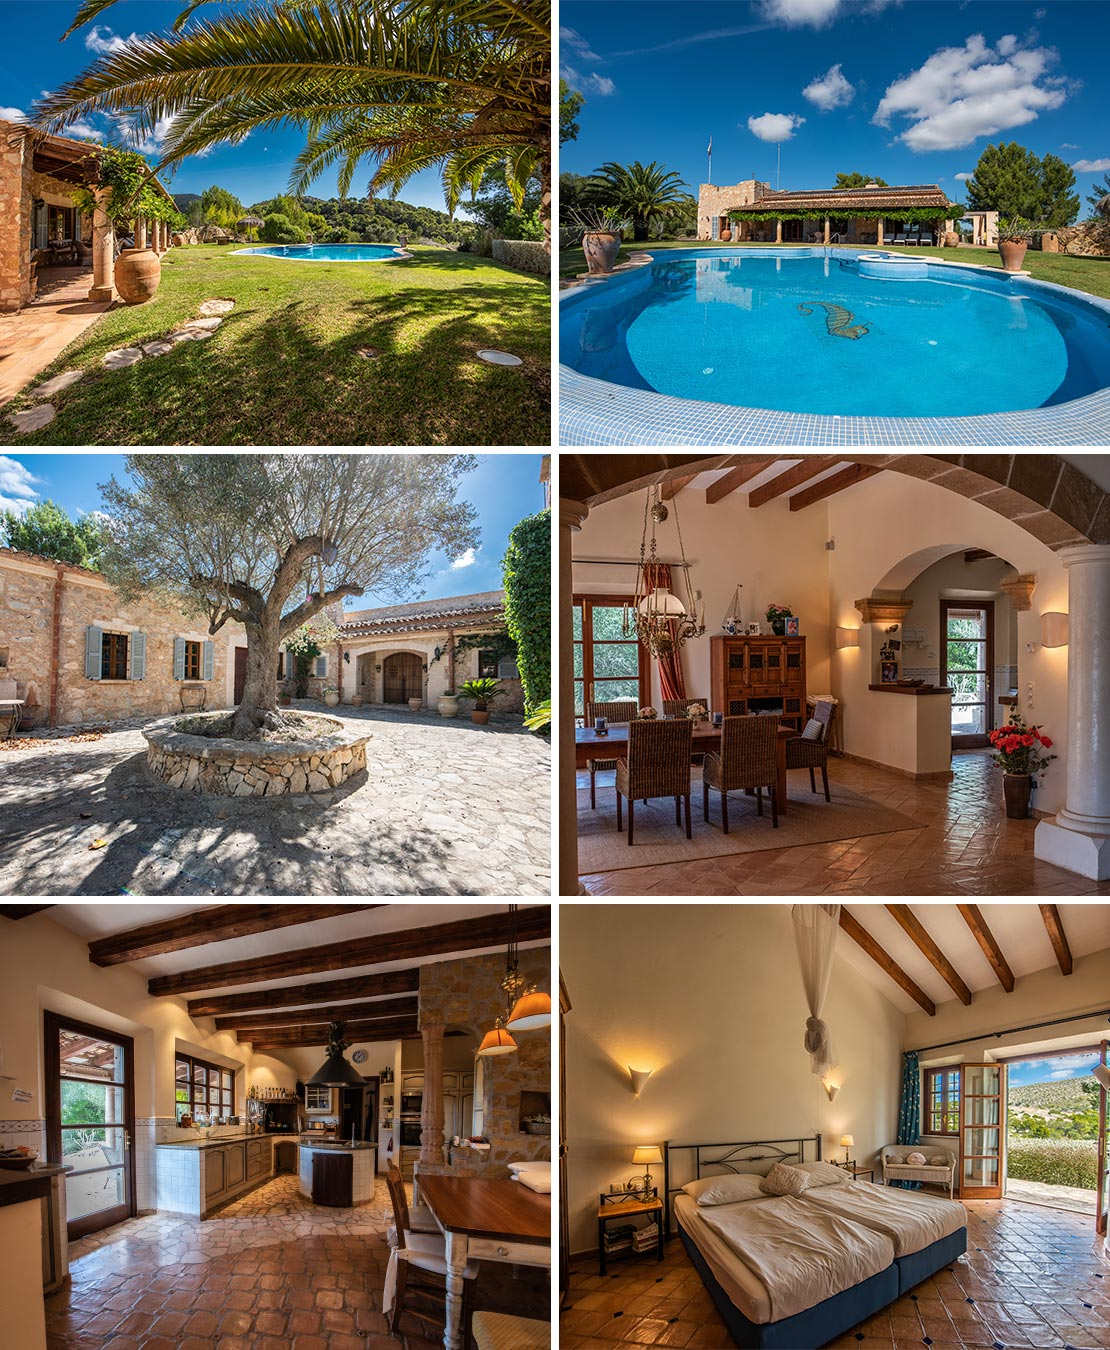 New construction finca on Majorca